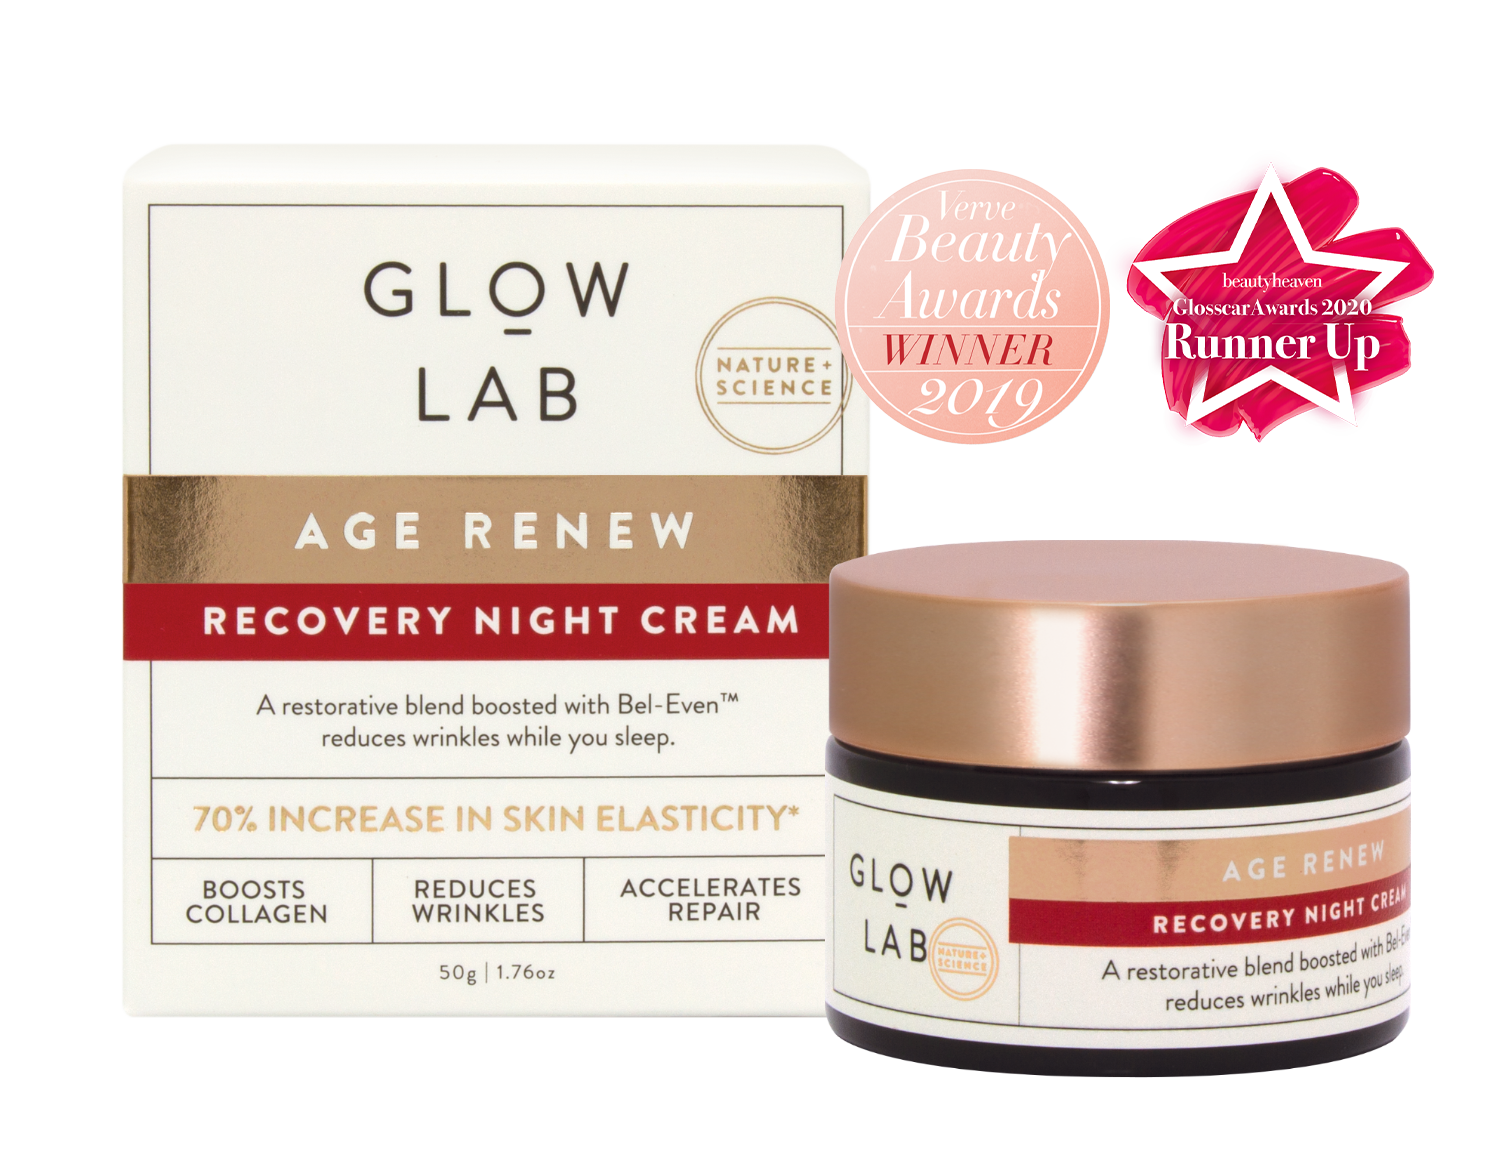 Age Renew Recovery Night Cream